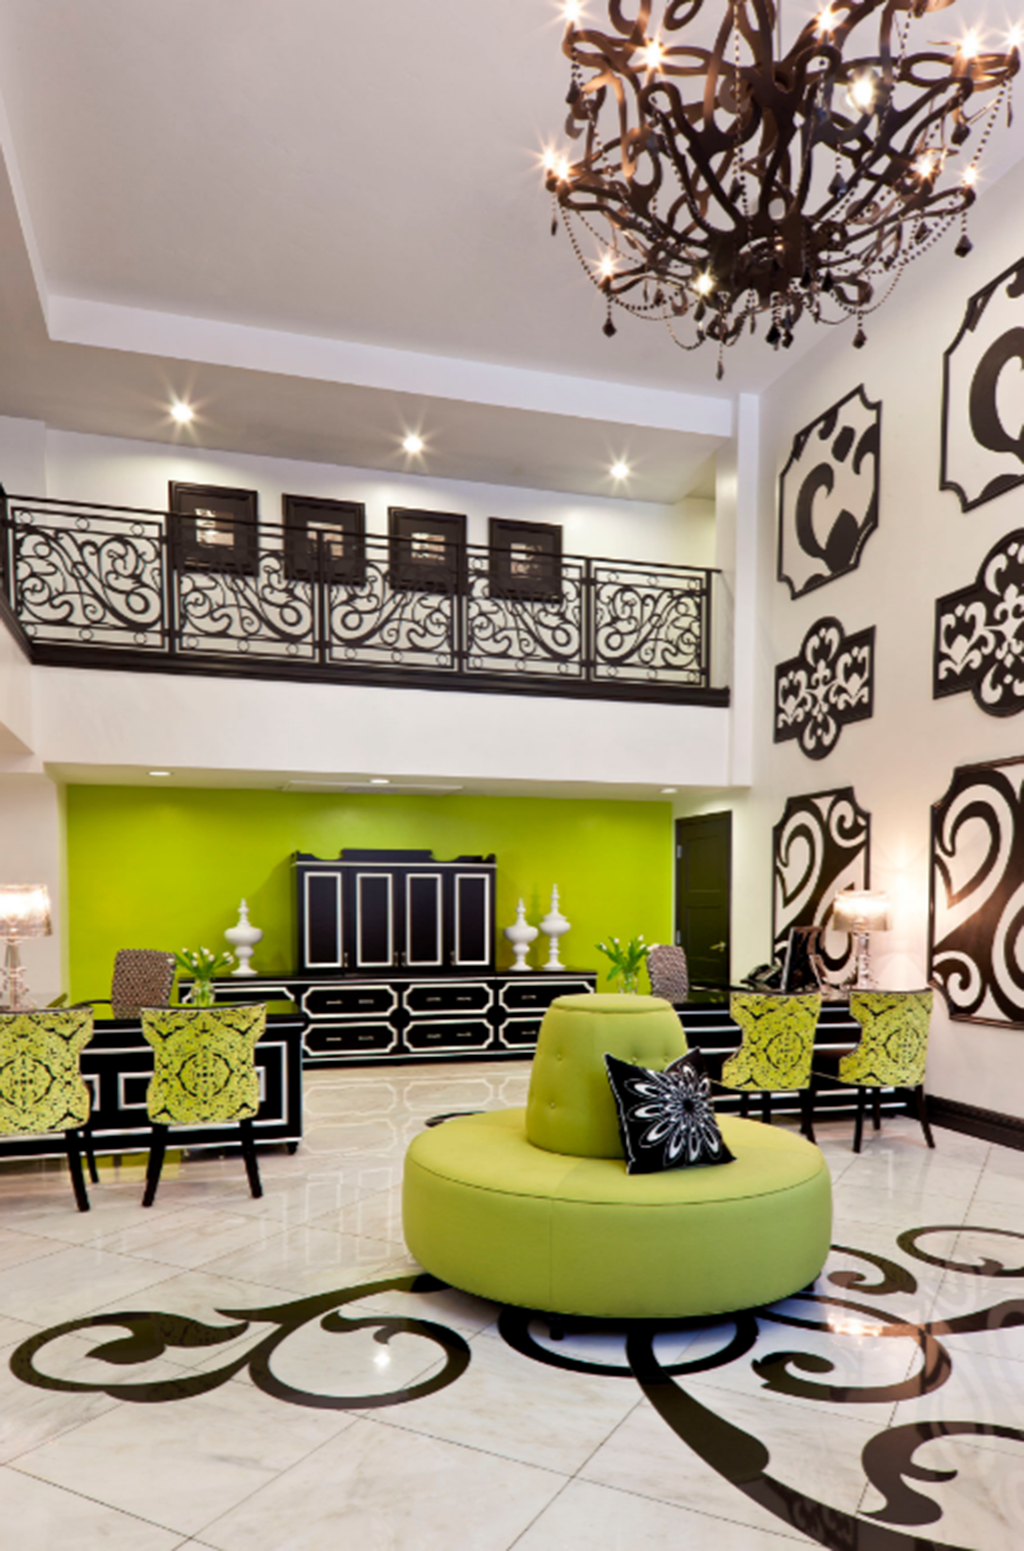 Another fantastic use of chartreuse from Robin Wilson Interior Design. Not only is Robin a Design Institute of San Diego graduate – she is a board member as well!